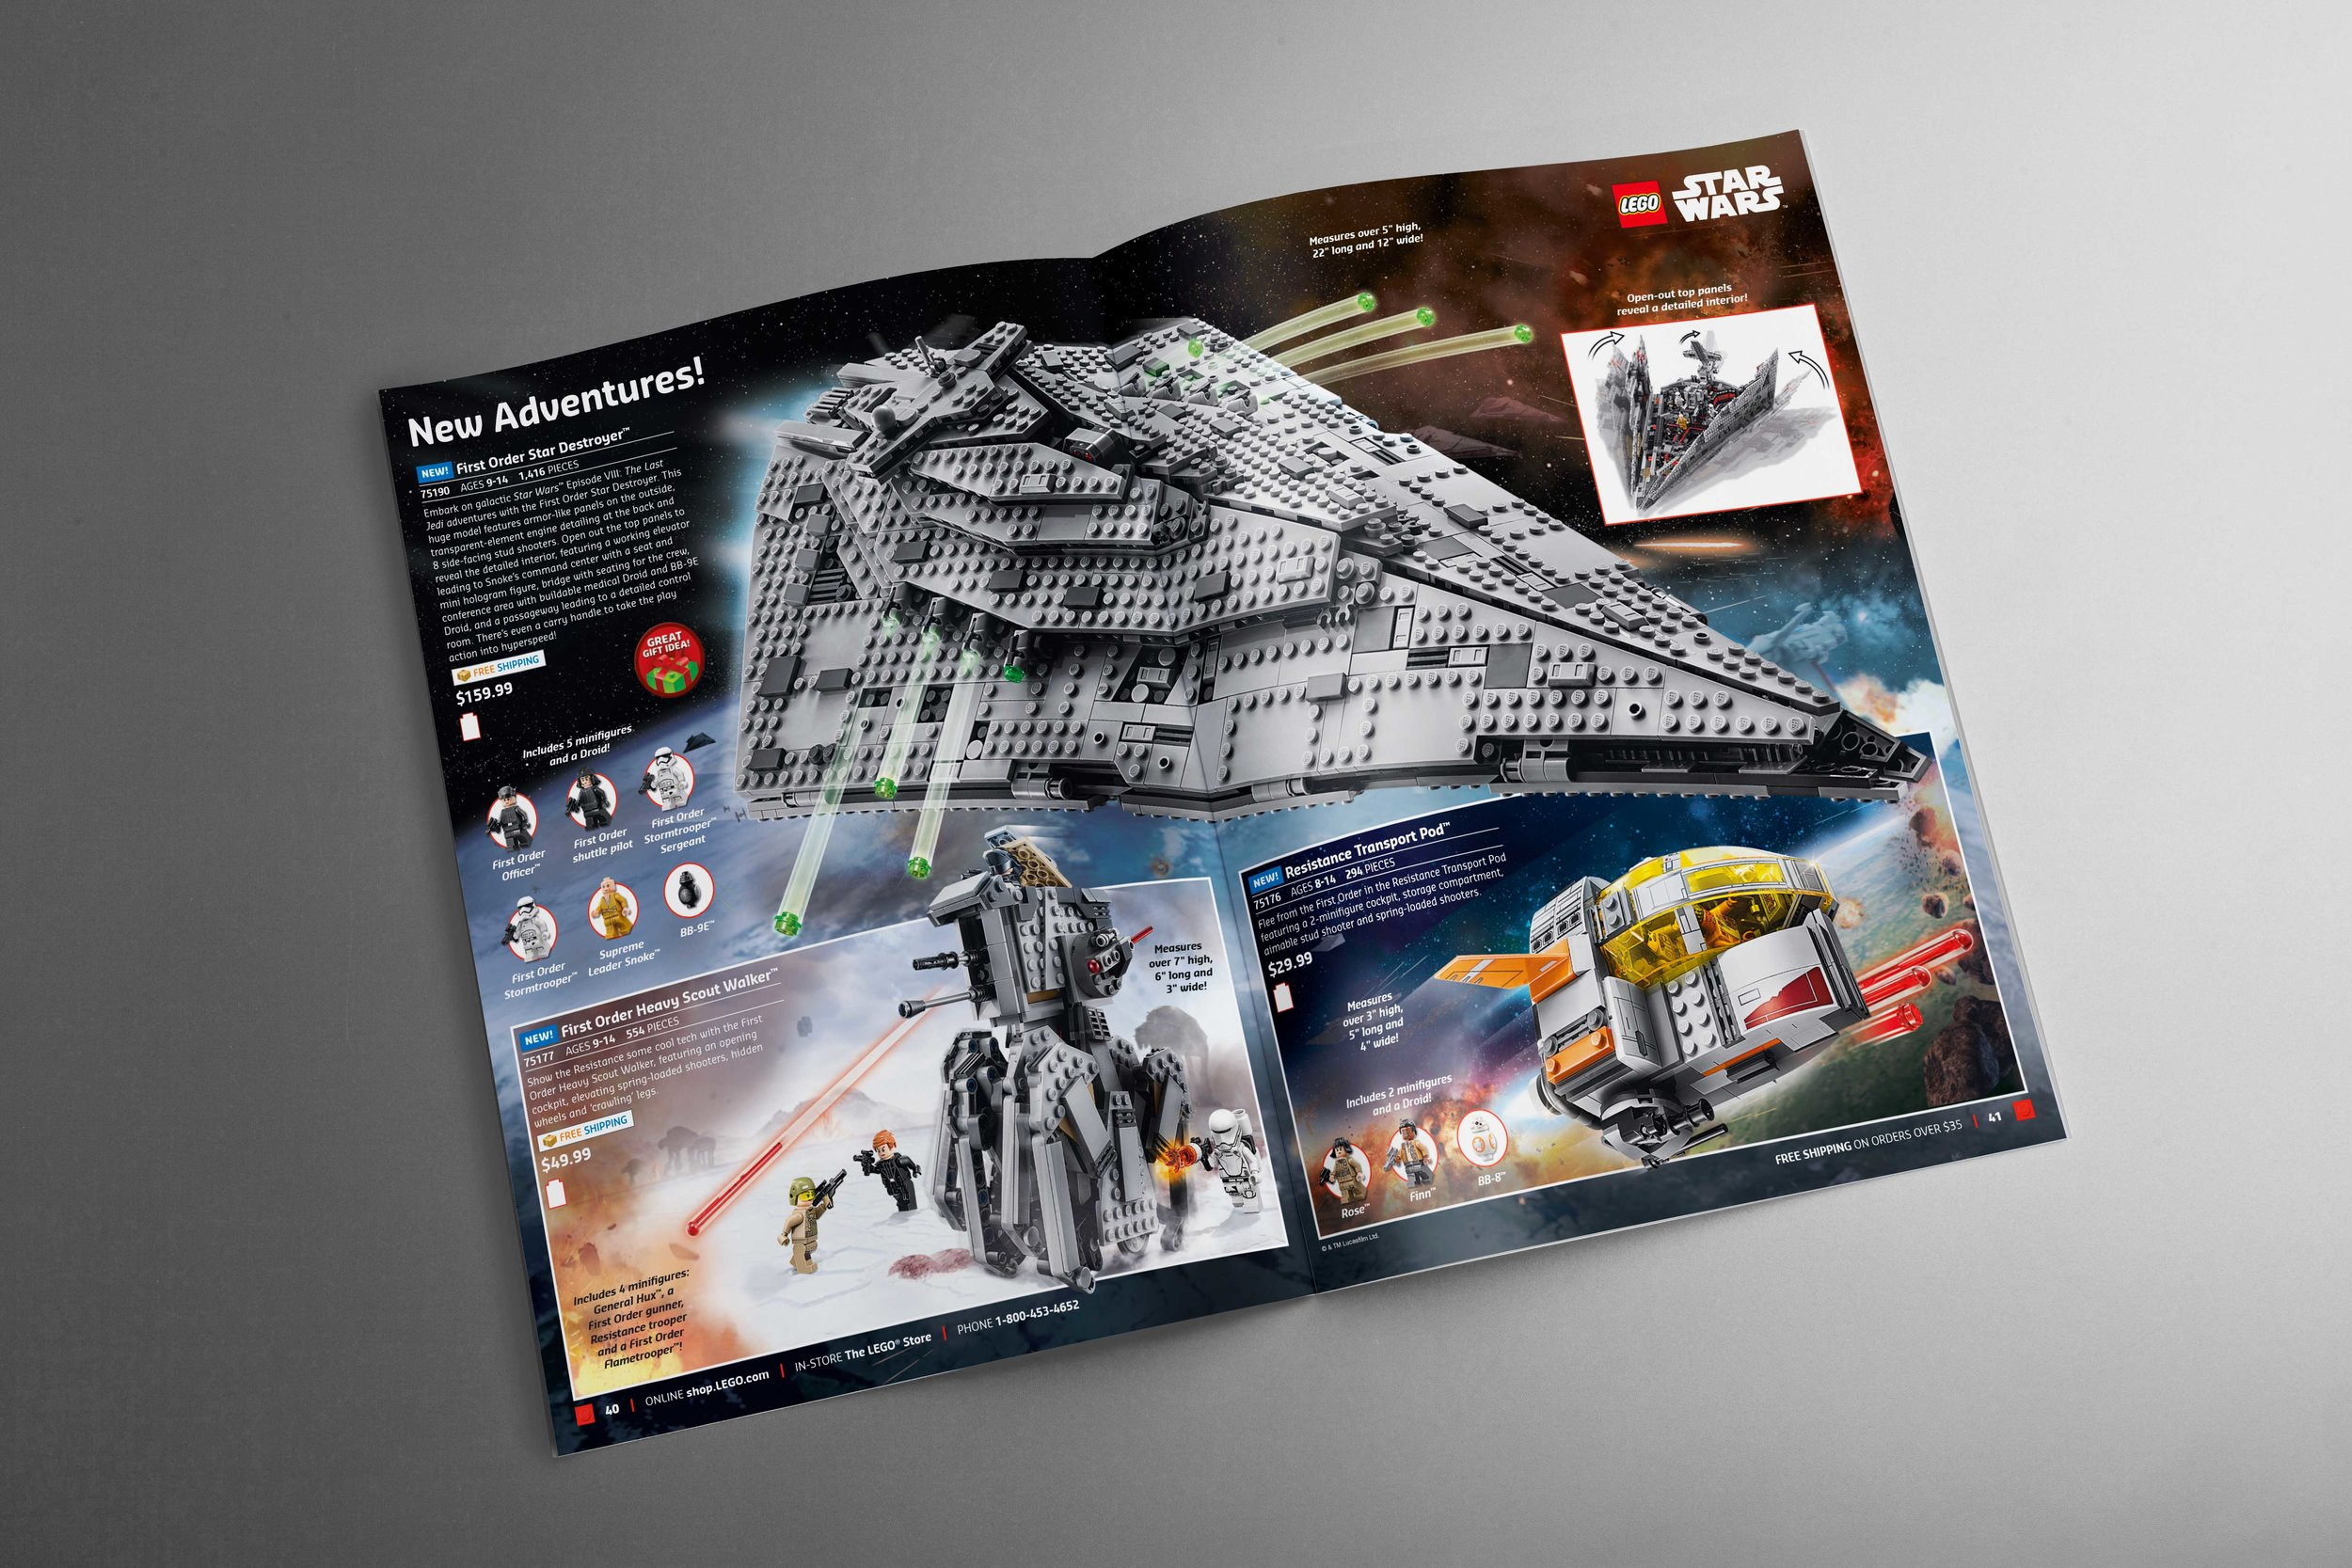 2017 US Fall Catalog   Center spread for US Fall Catalog which shows not one, but three new Star Wars sets.